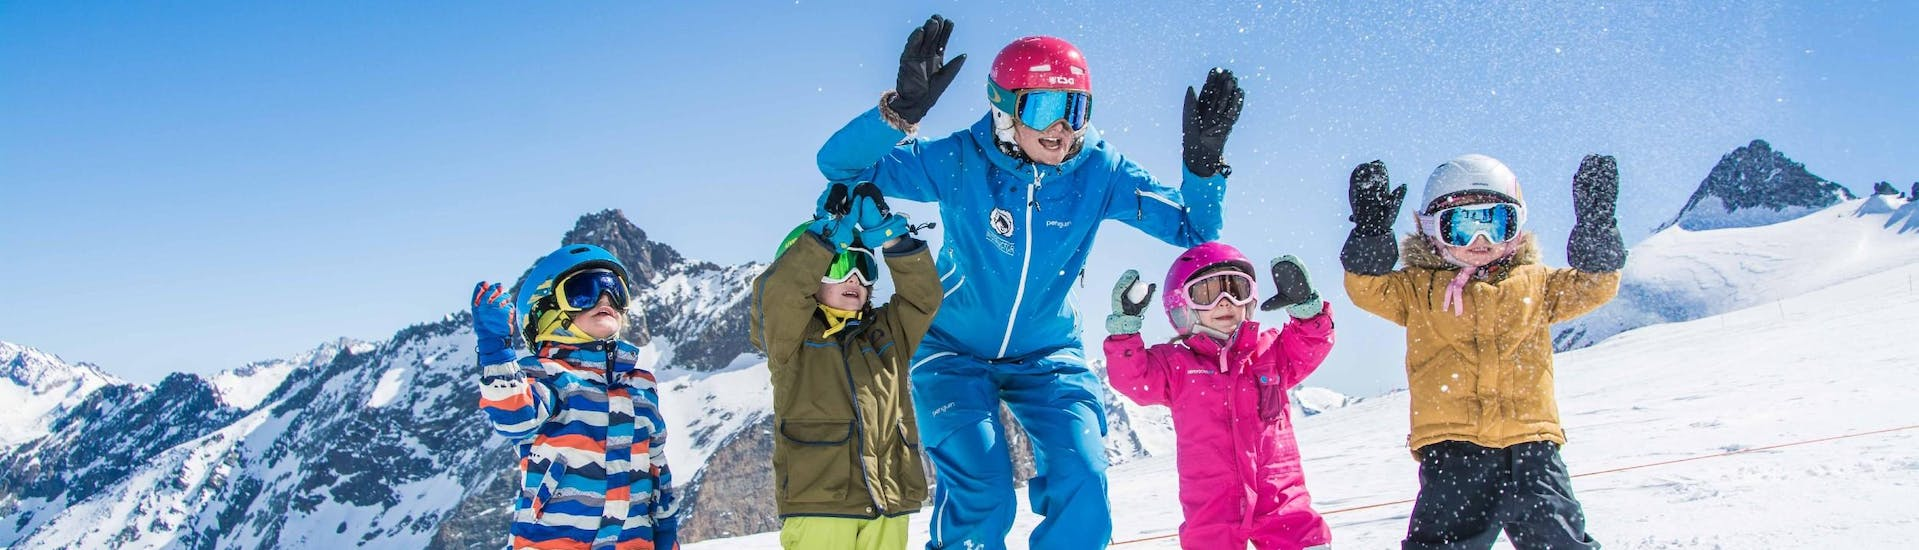 Discovery Kids Ski Lessons (from 3 y.) for First Timers